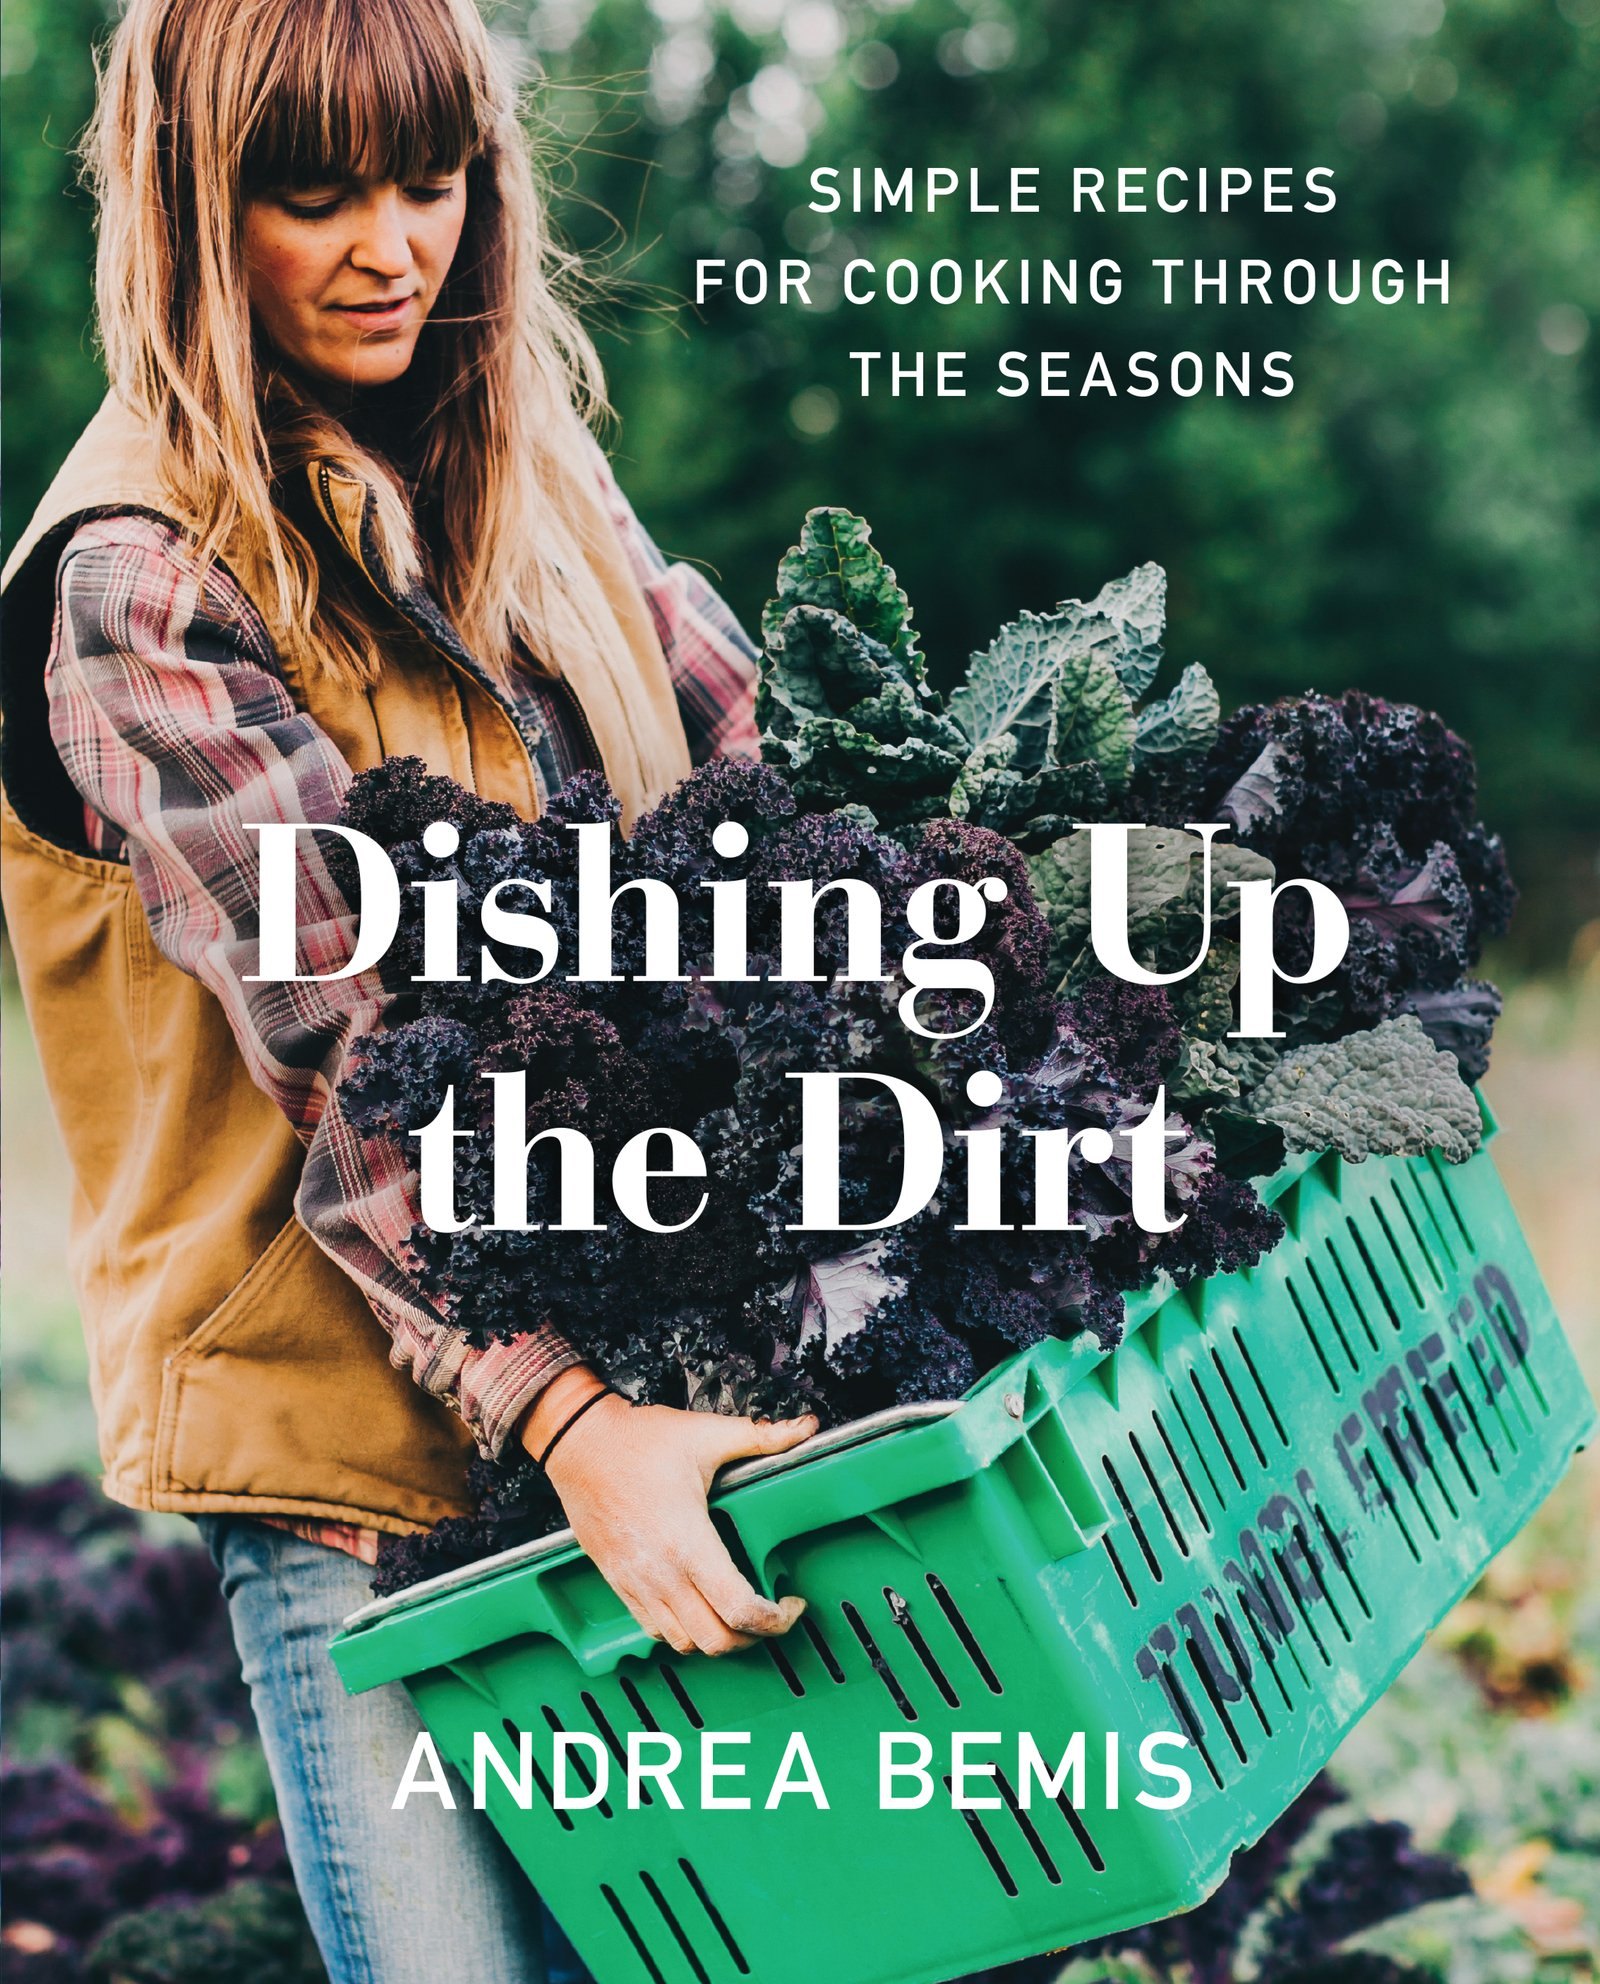 DISHING UP THE DIRT_Andrea Bemis.jpg